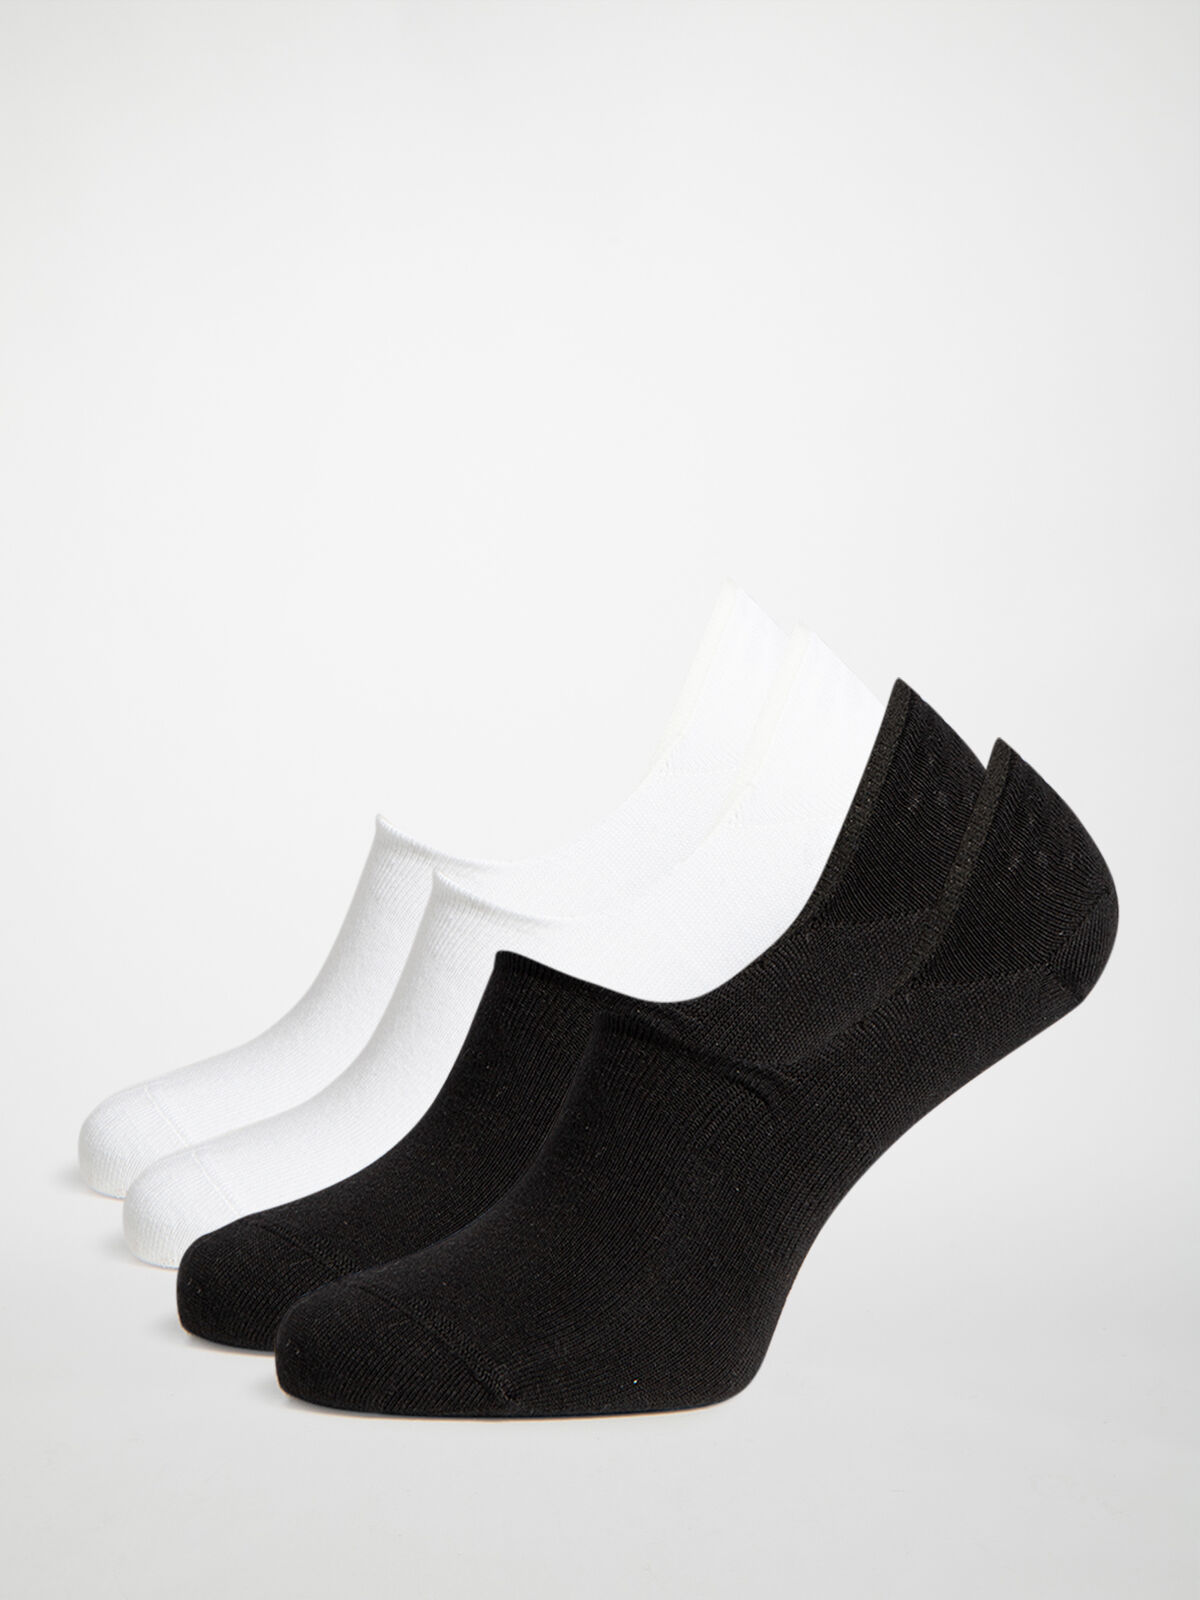 4-Pack of No-Show Socks